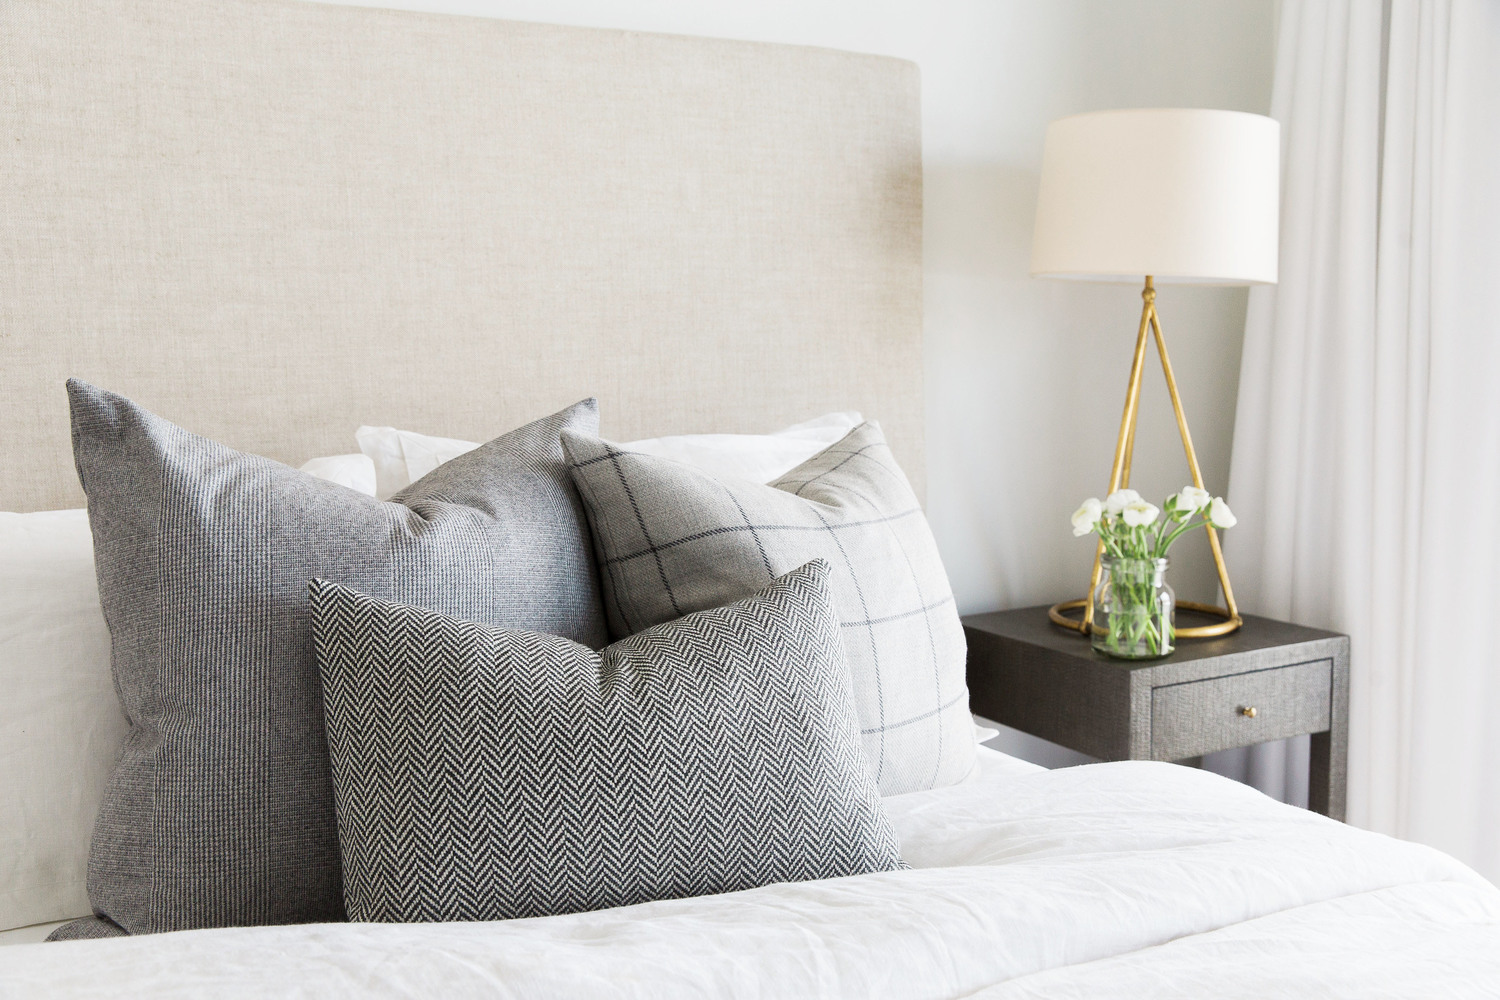 Decorative pillows on white bed in bedroom